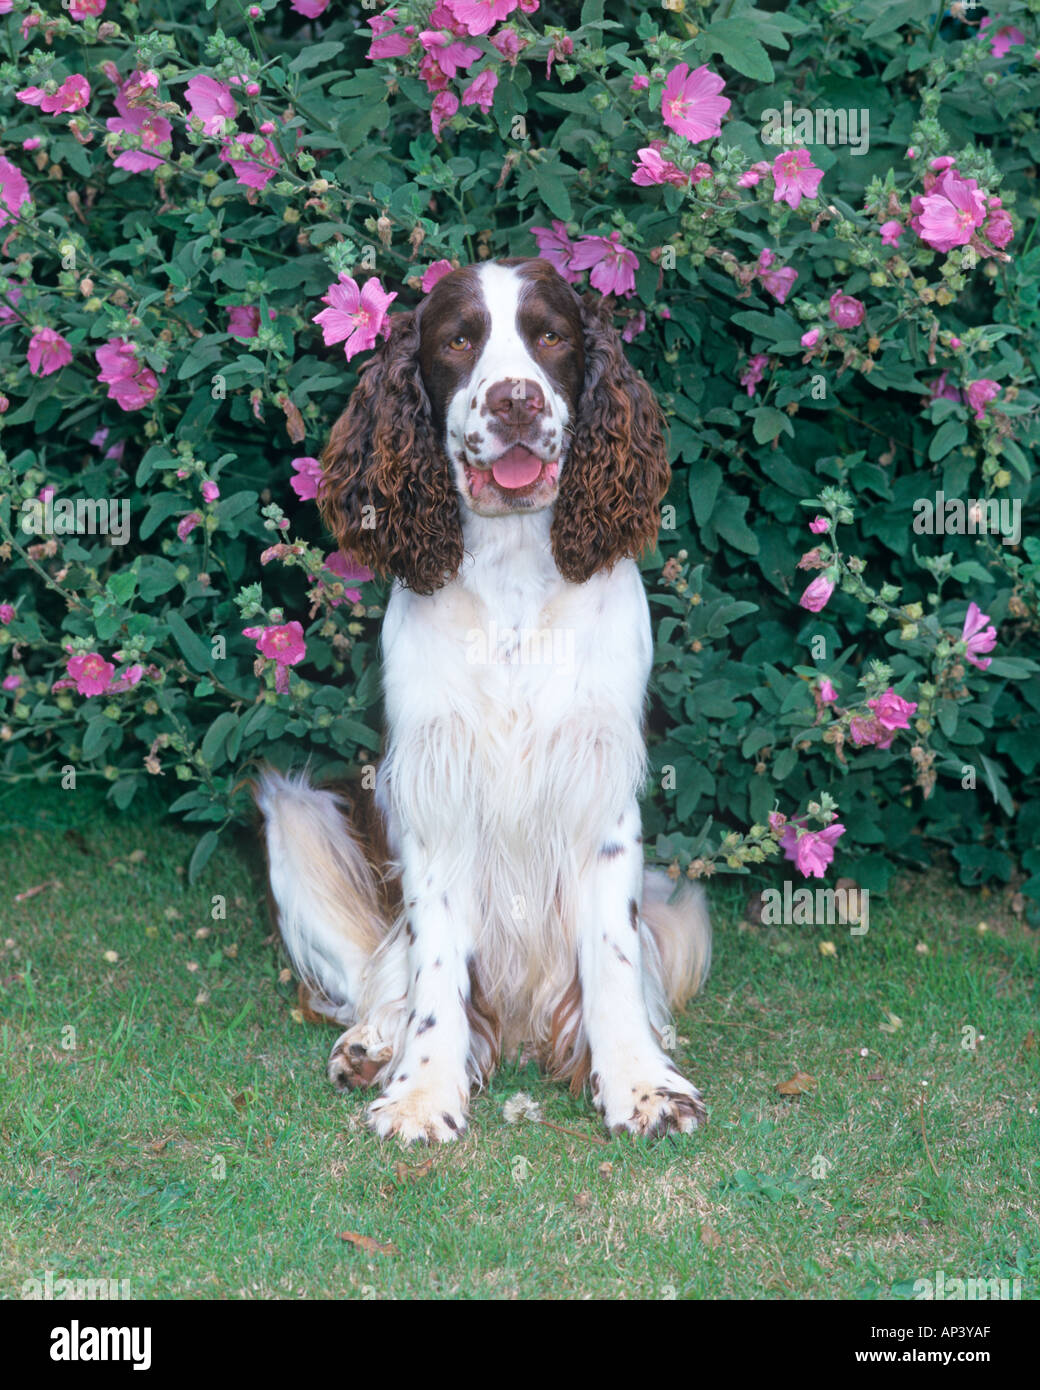 English Springer Spaniel in Garden Setting - Stock Image